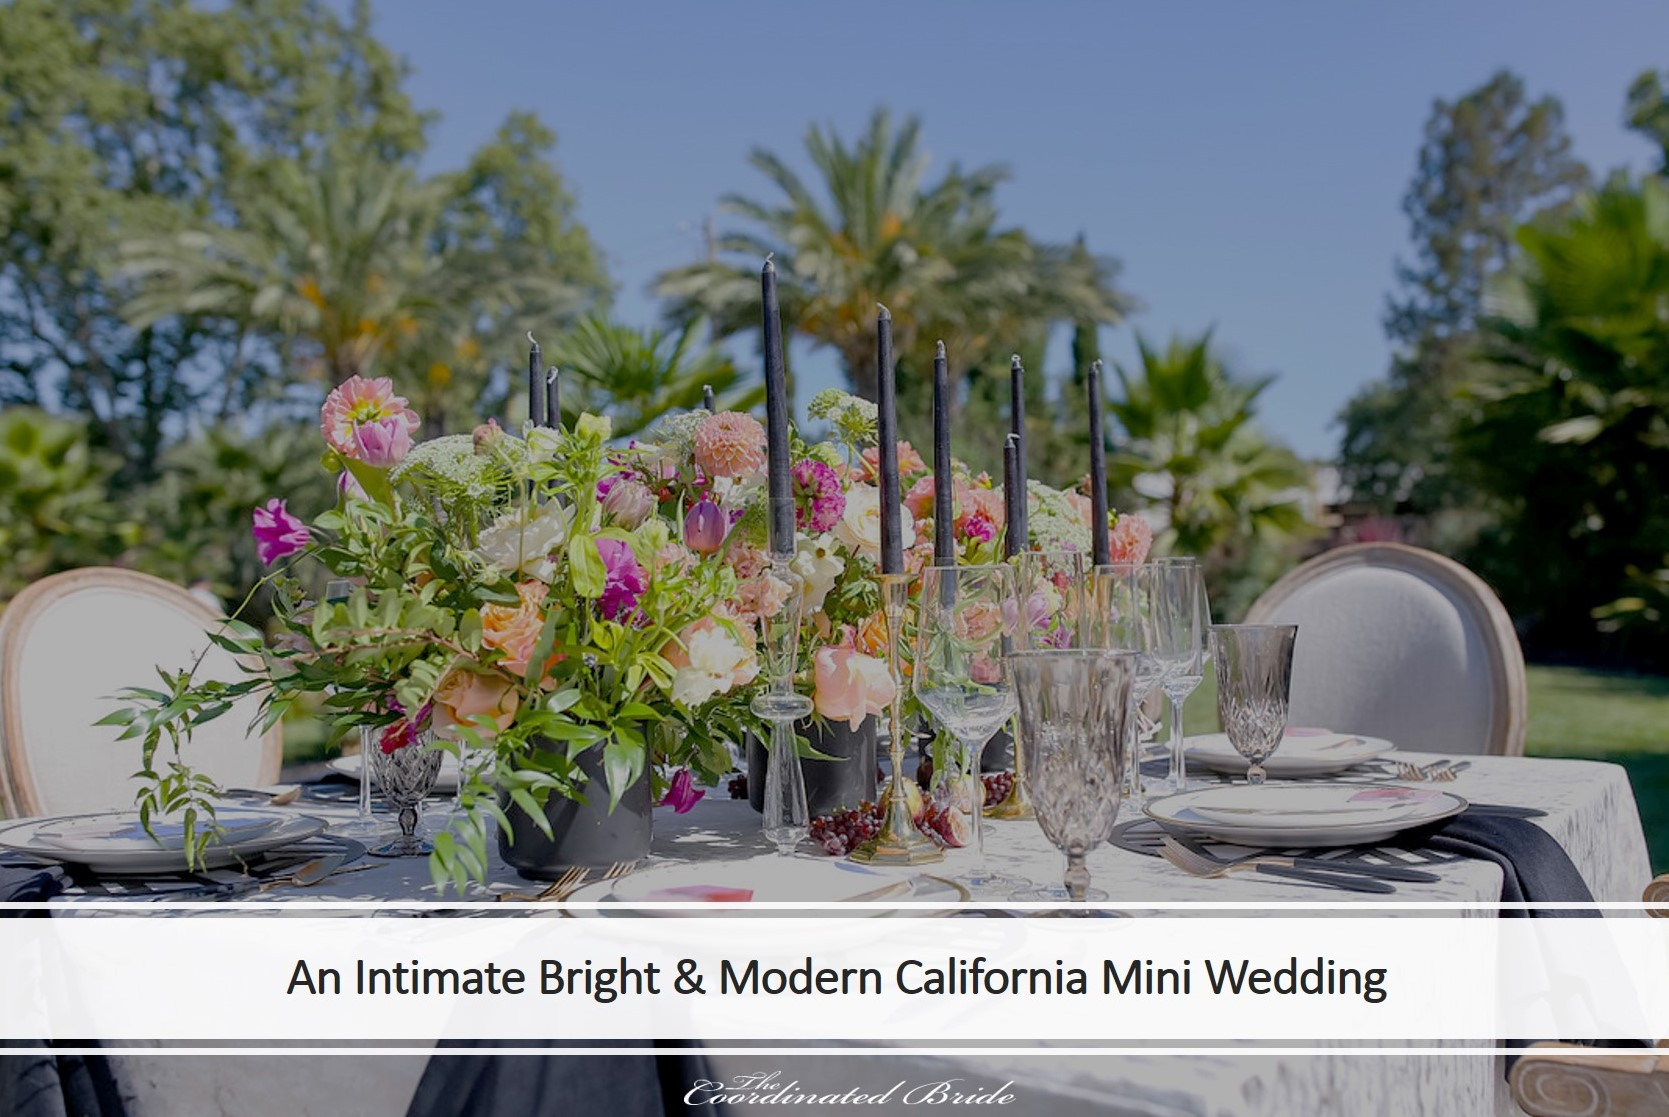 A Bright & Modern California Mini Wedding